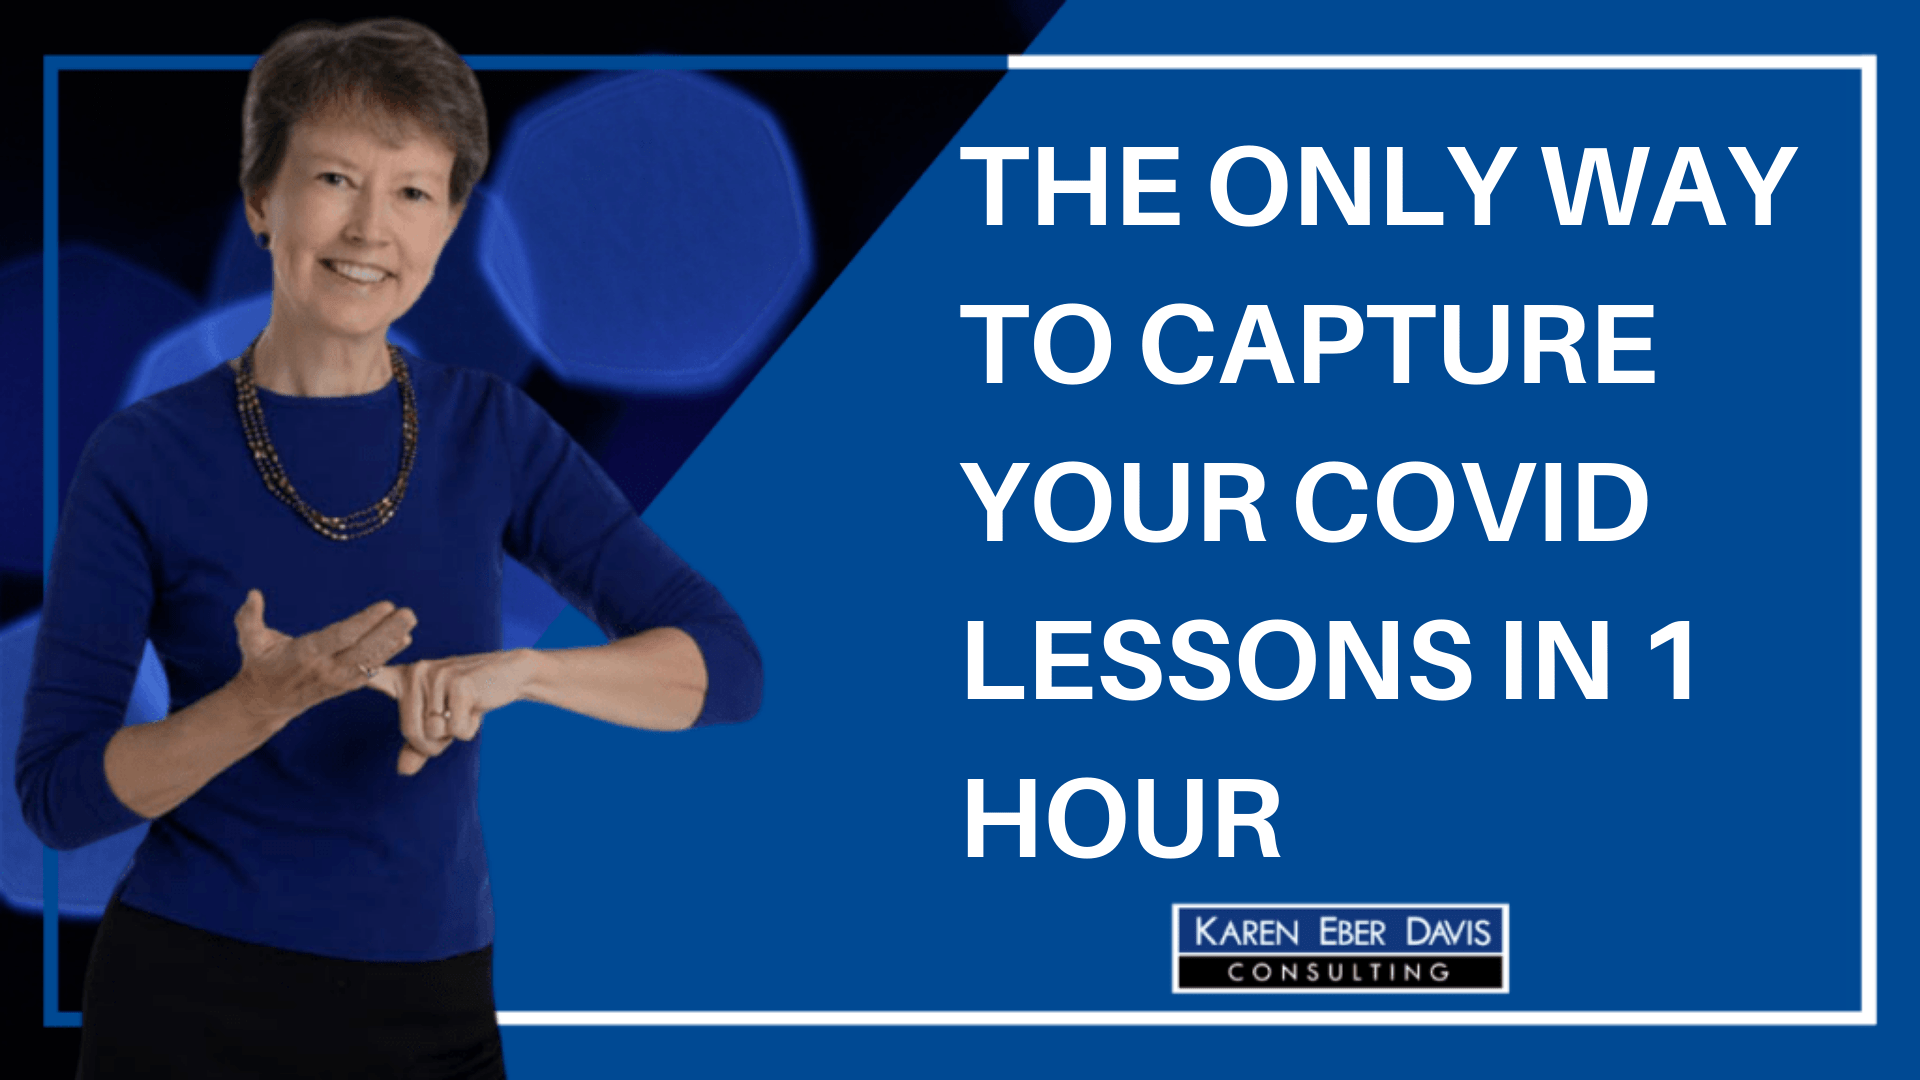 The Way to Capture Your COVID Lessons in 1 Hour